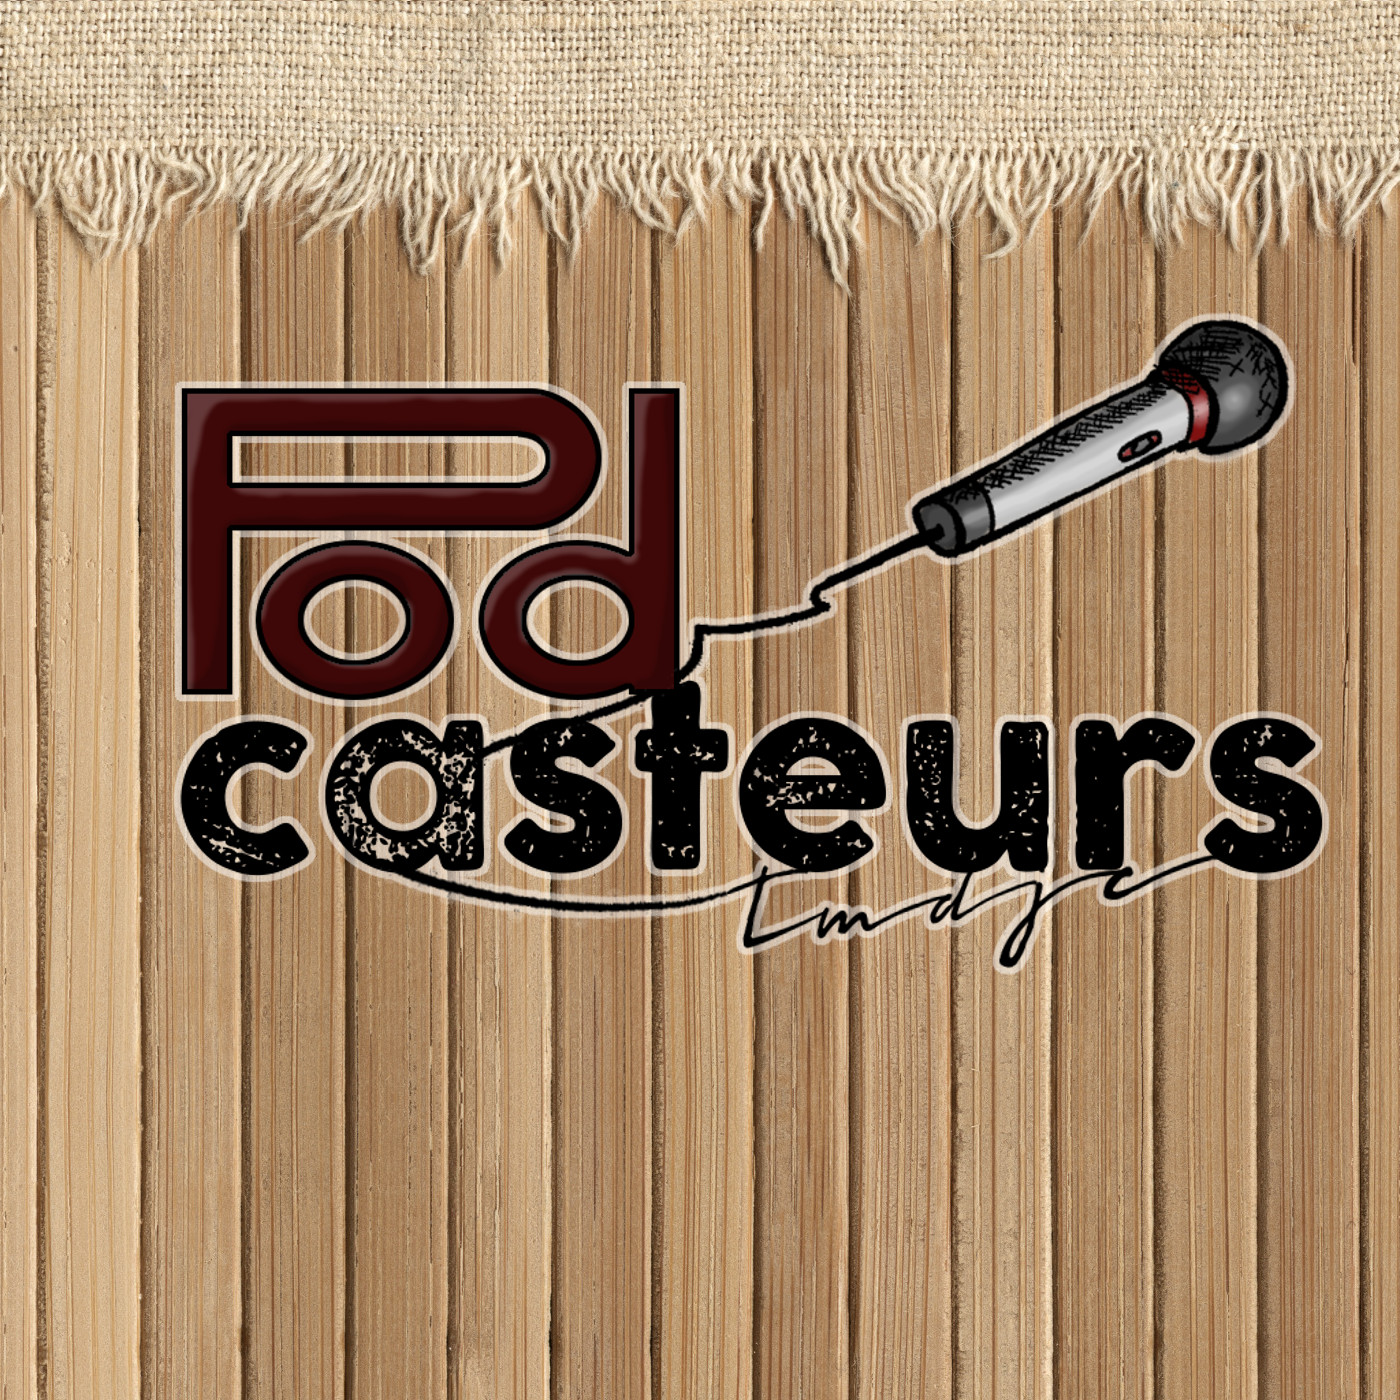 Podcasteurs